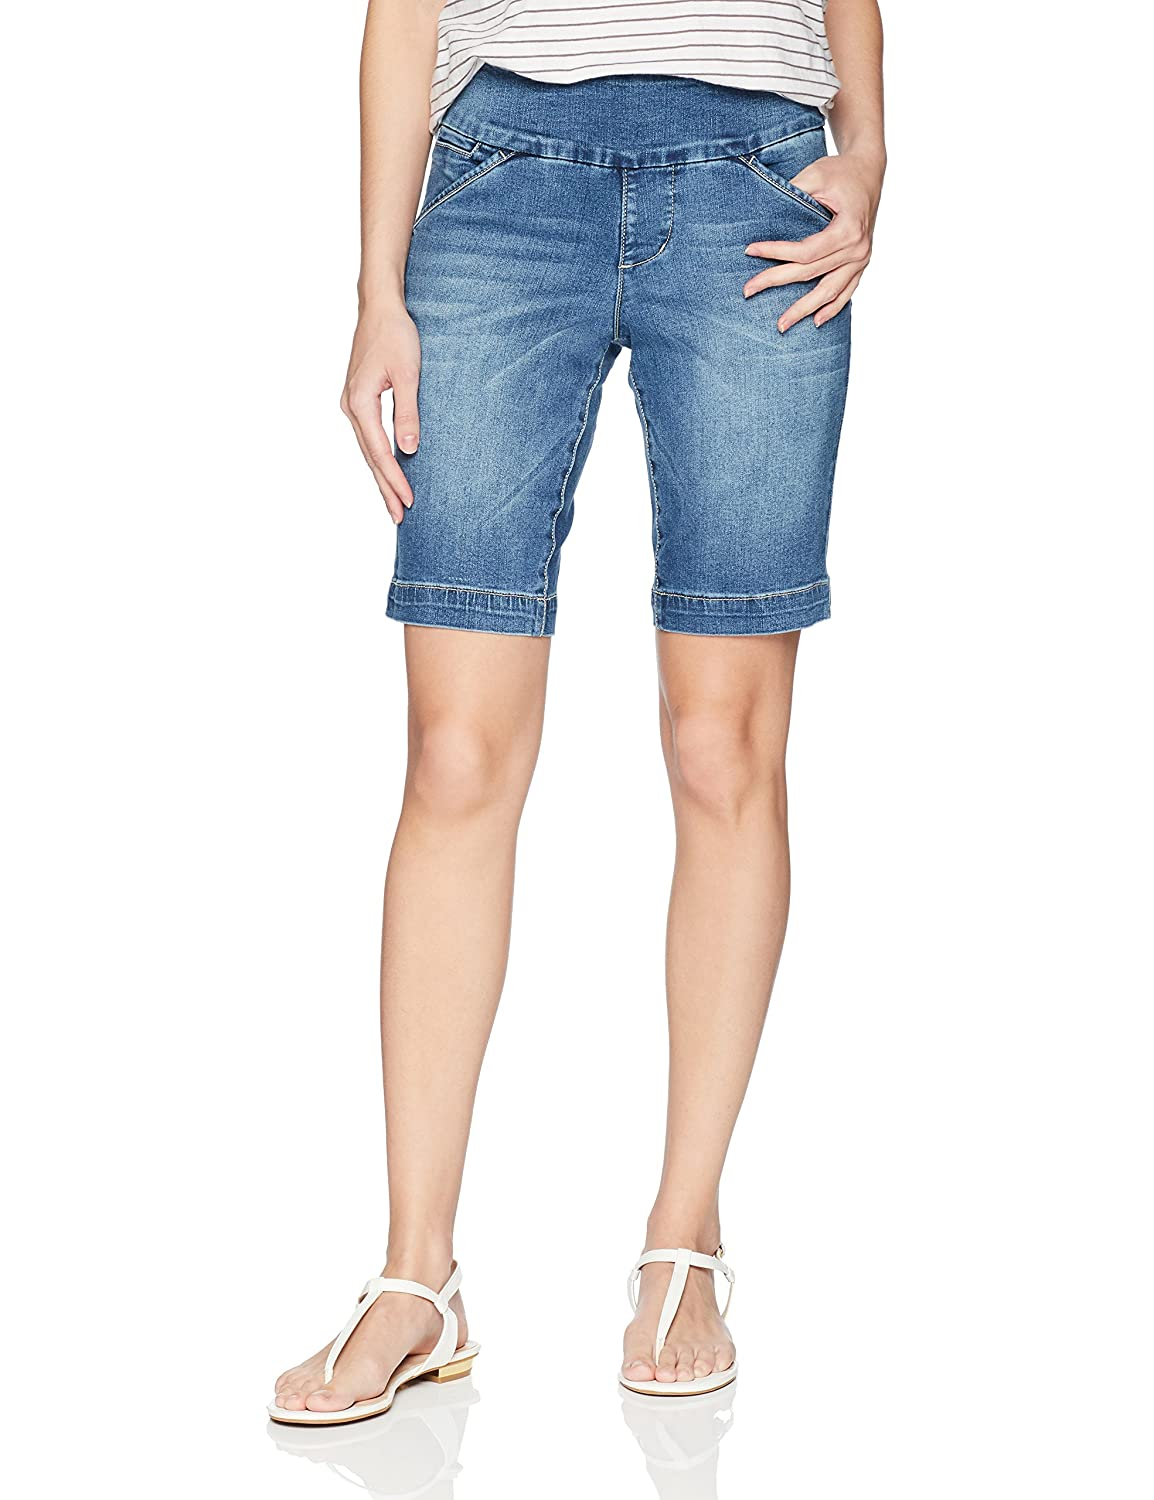 Horizon bluee Jag Jeans Womens Ainsley Pull on 8  Short